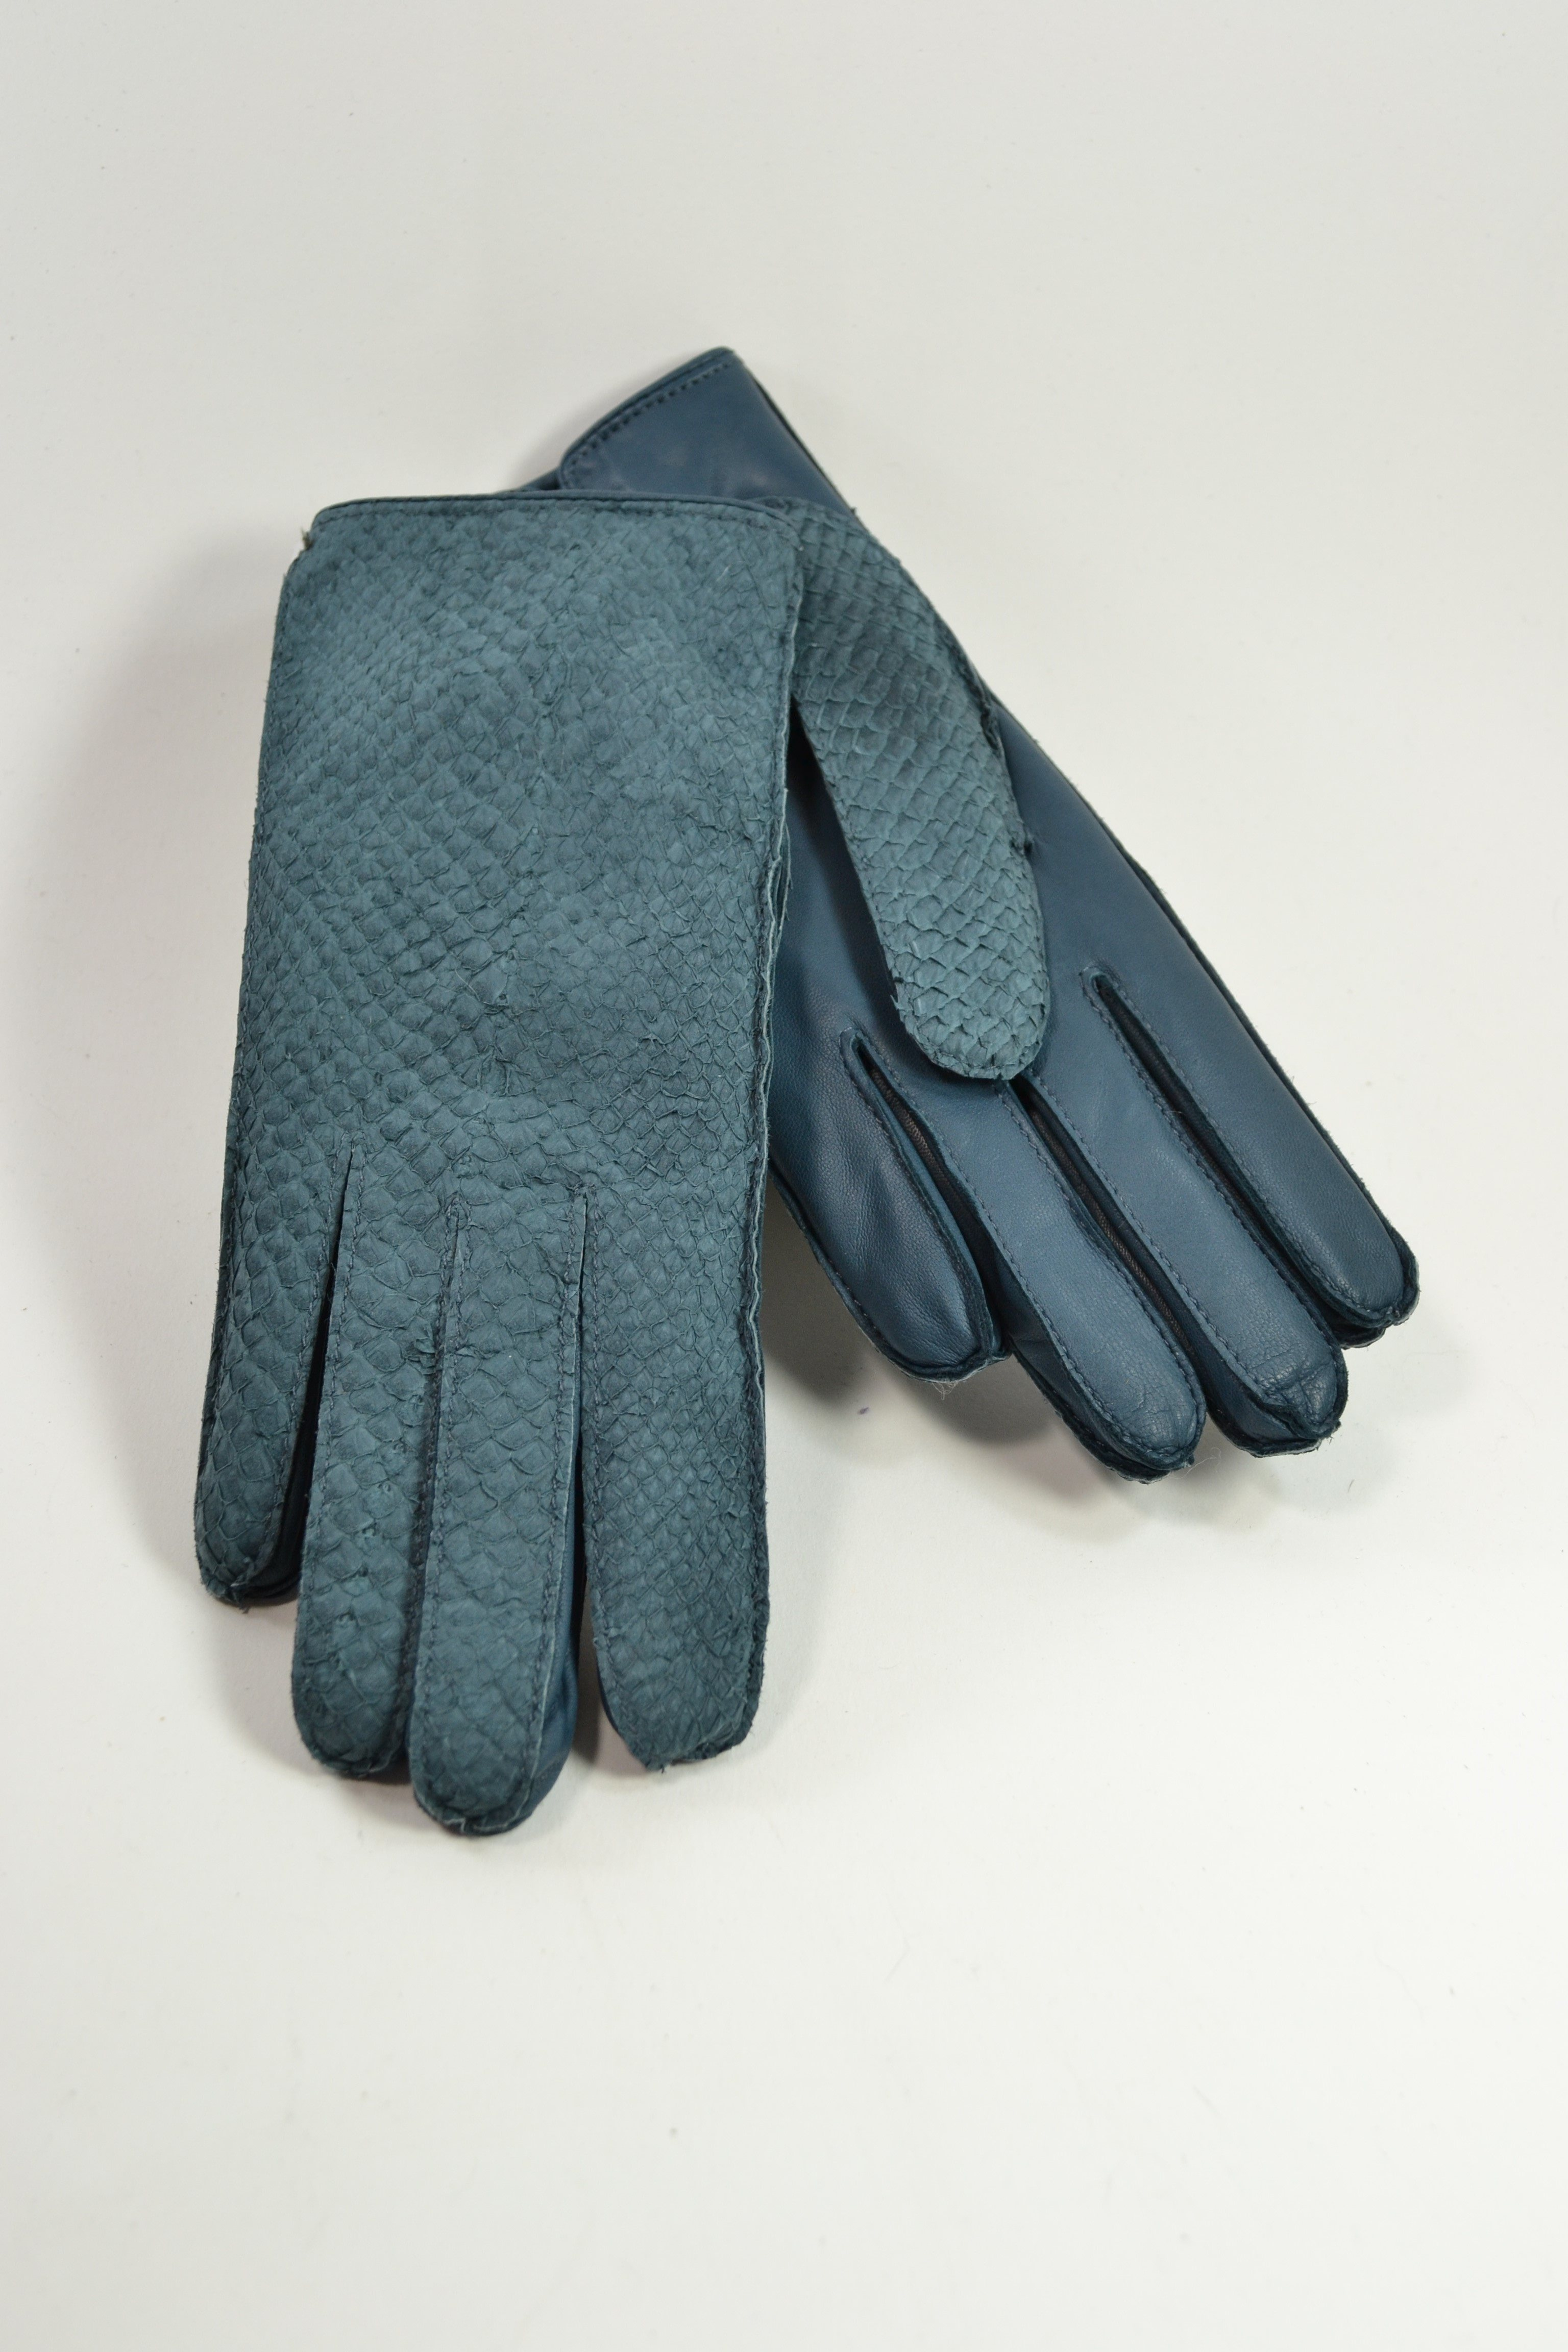 Salmon ladies gloves, cashmere lined, petrol blue